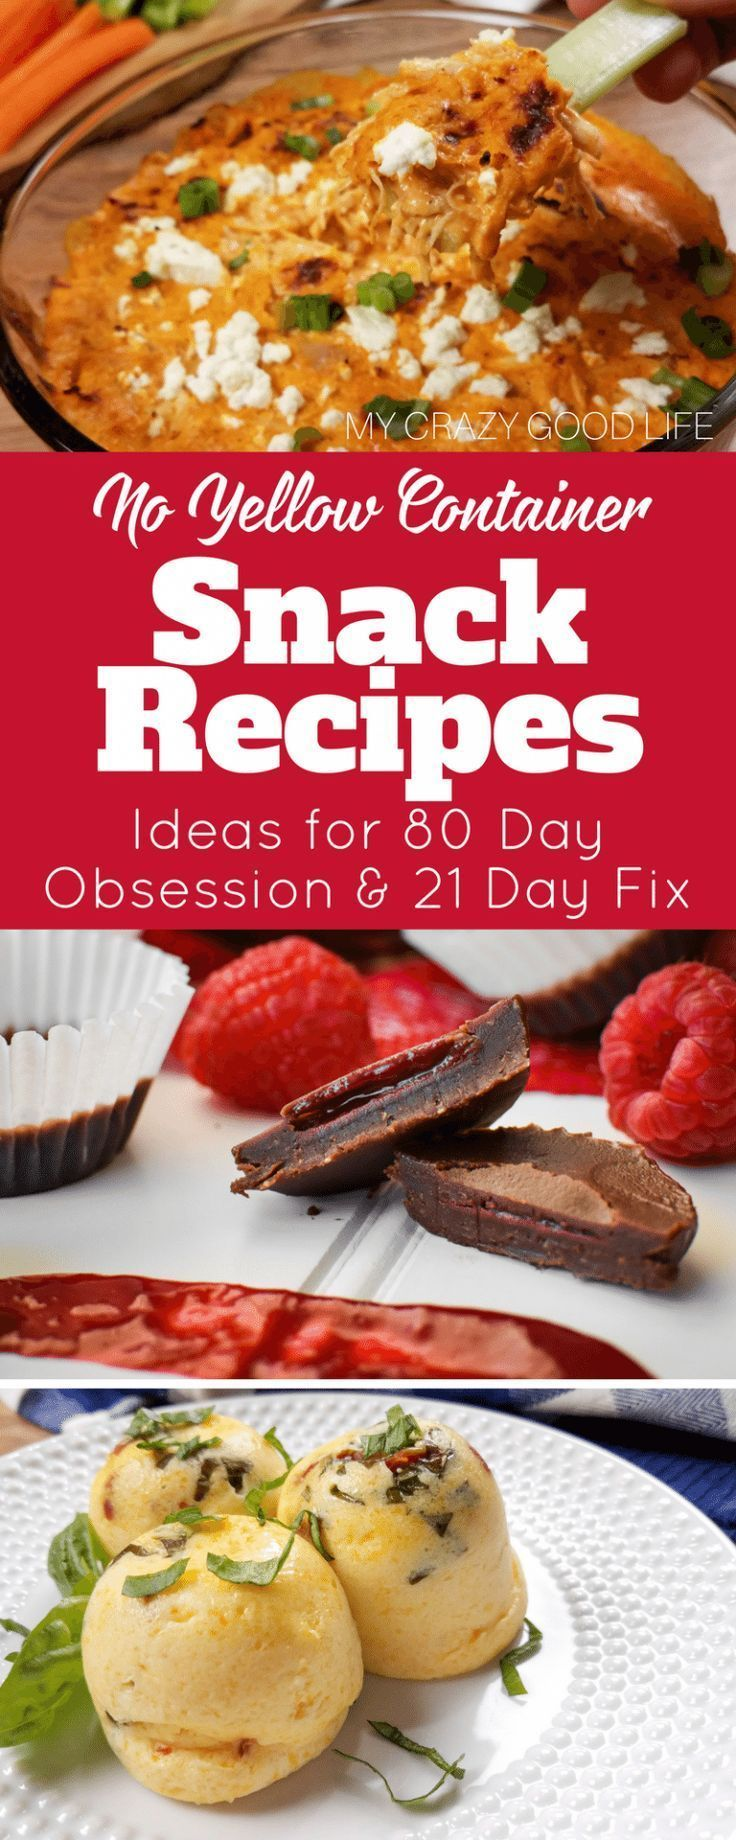 Best 25+ 80 day obsession ideas on Pinterest